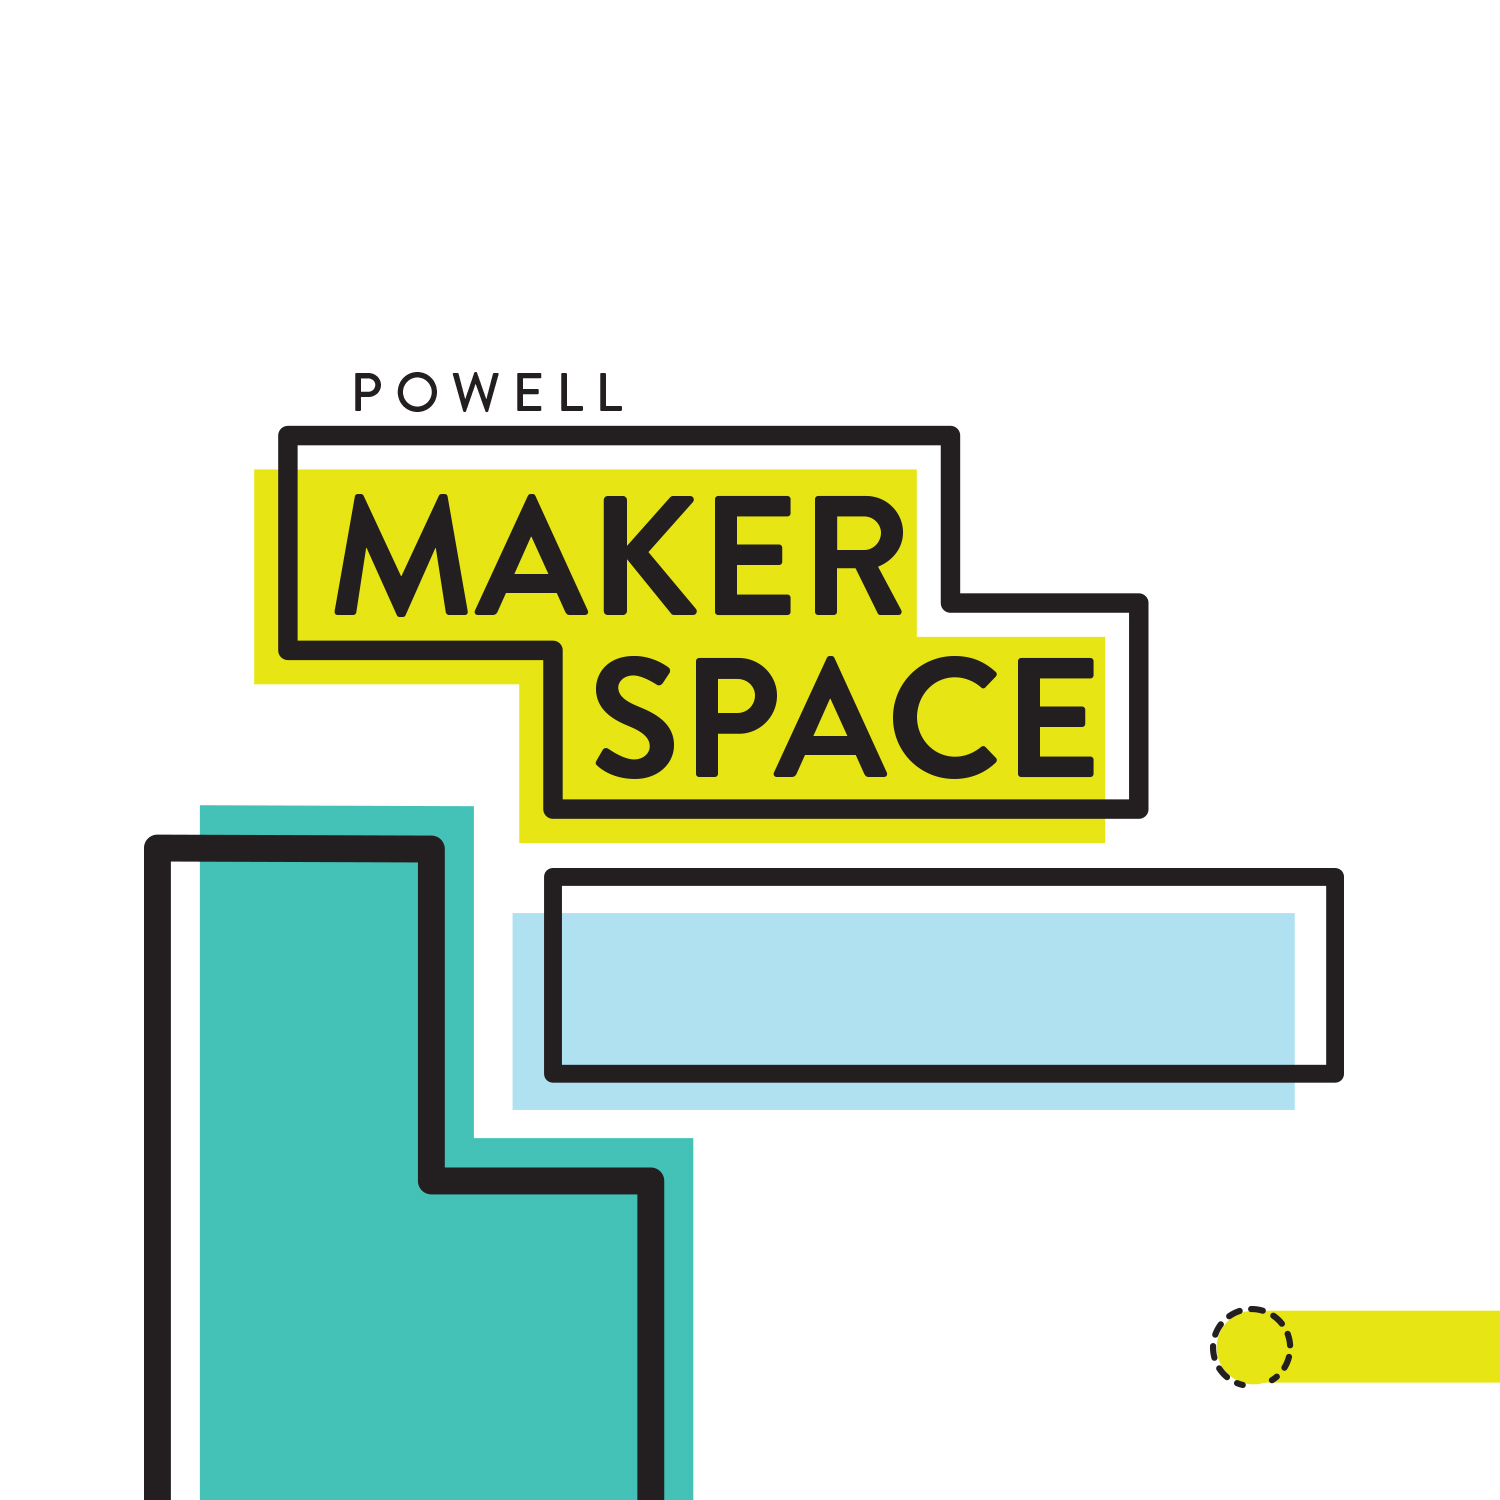 Powell MakerSpace